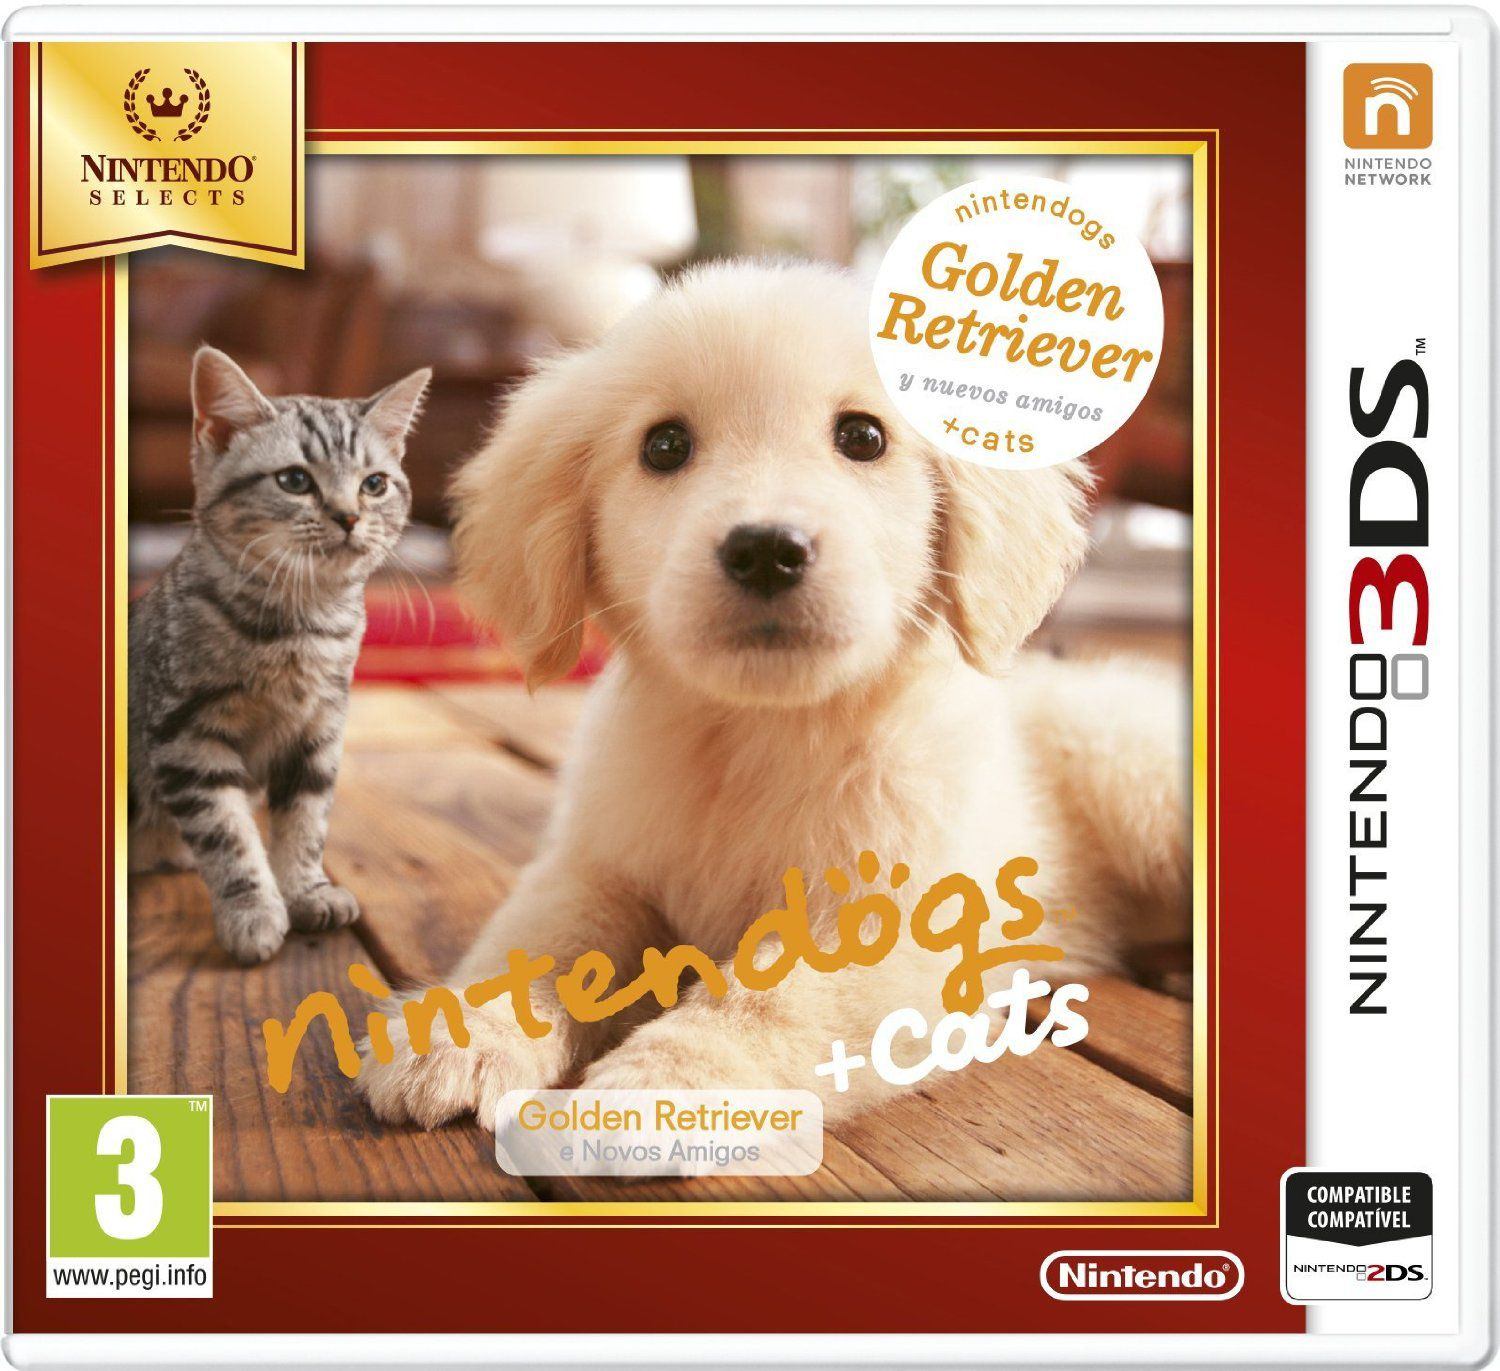 Ver Nintendogs Gatos Golden Retriever Selects 3Ds